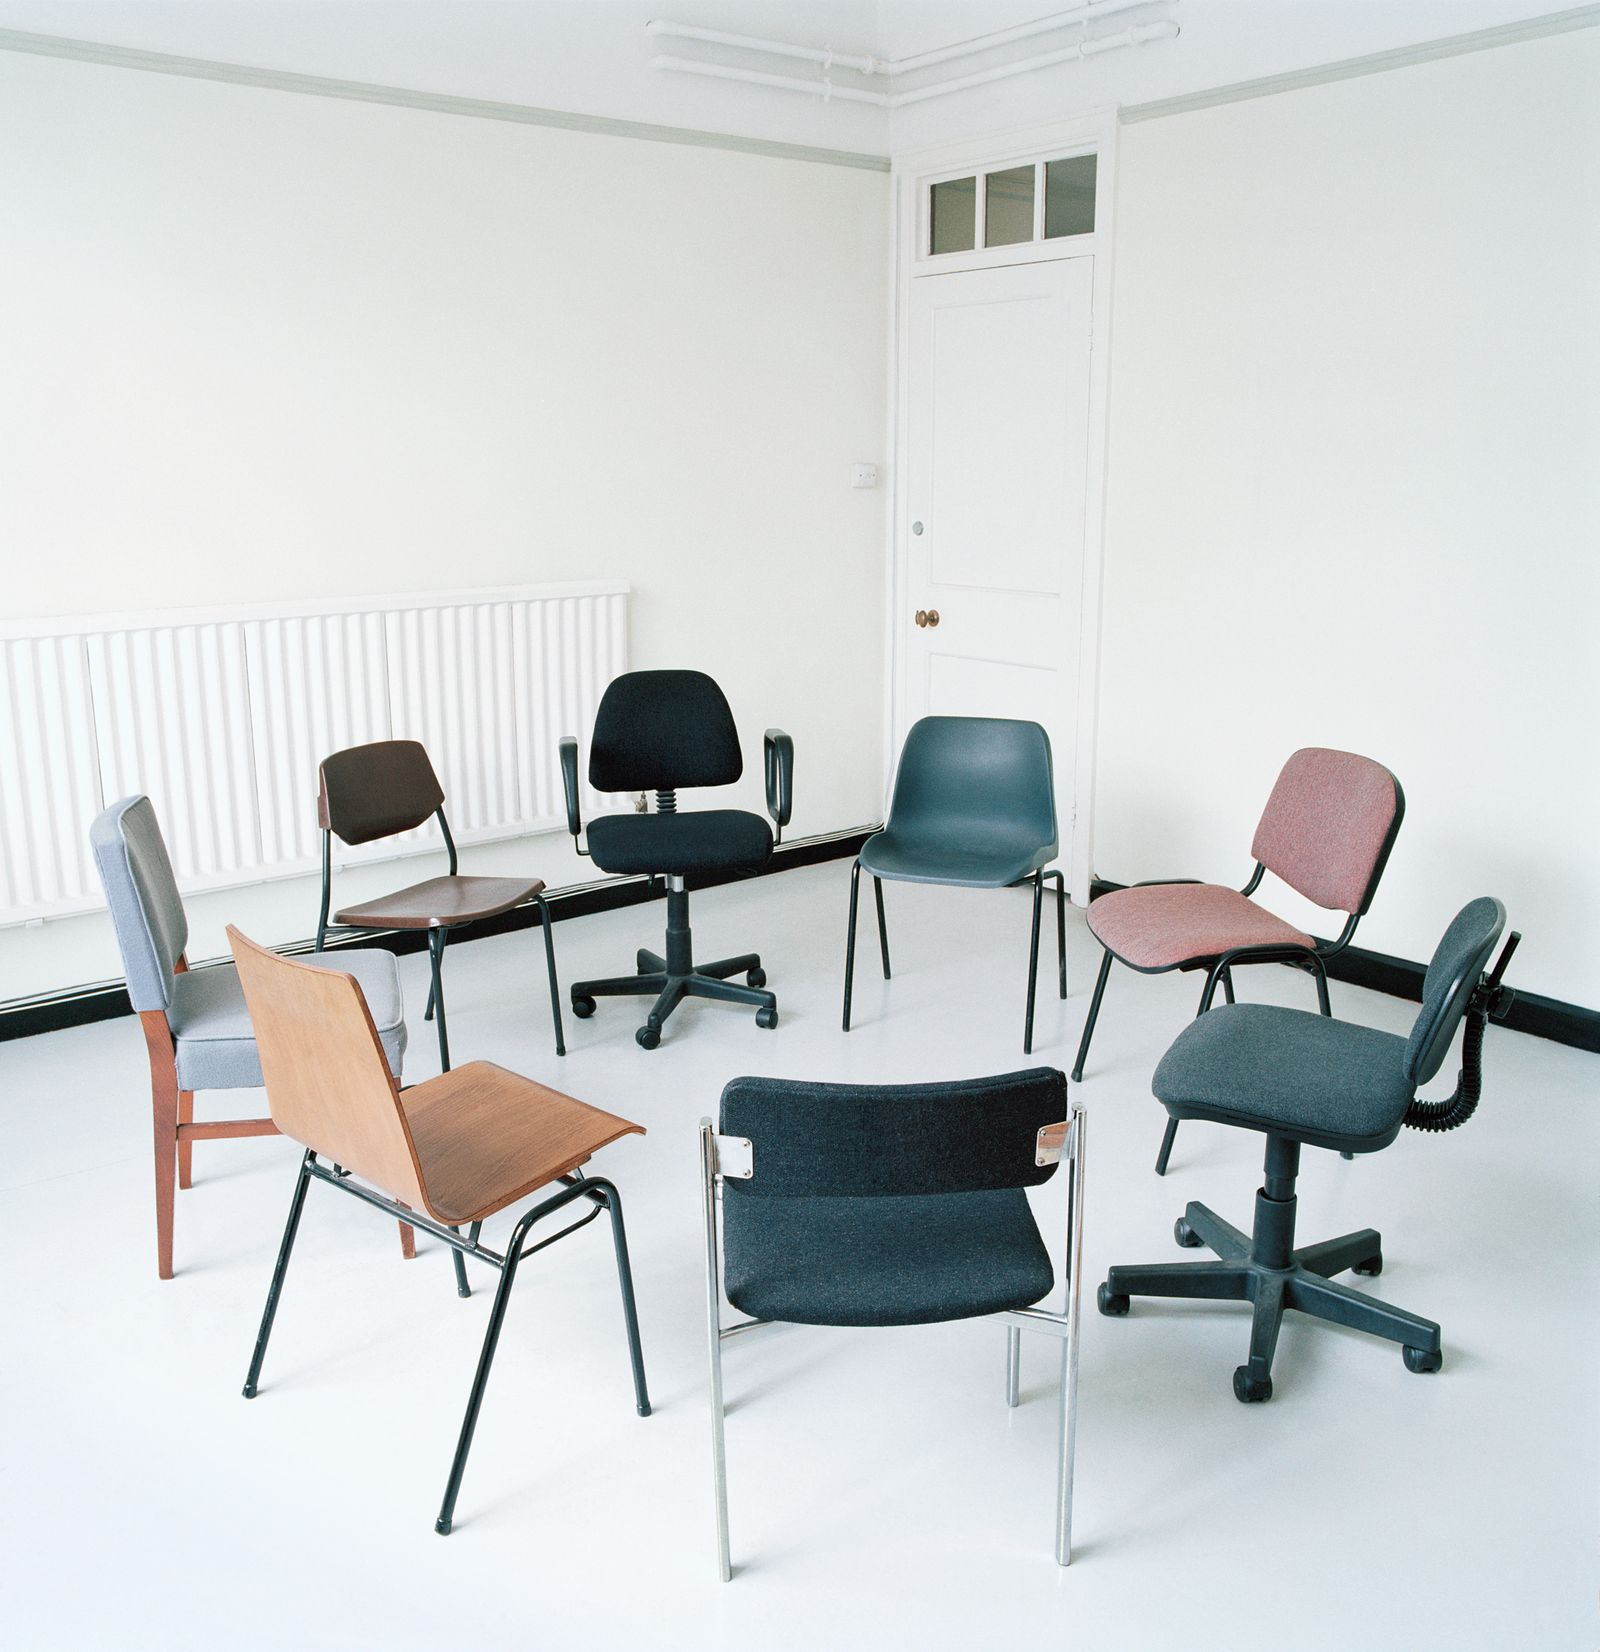 Assortment of office chairs in circle